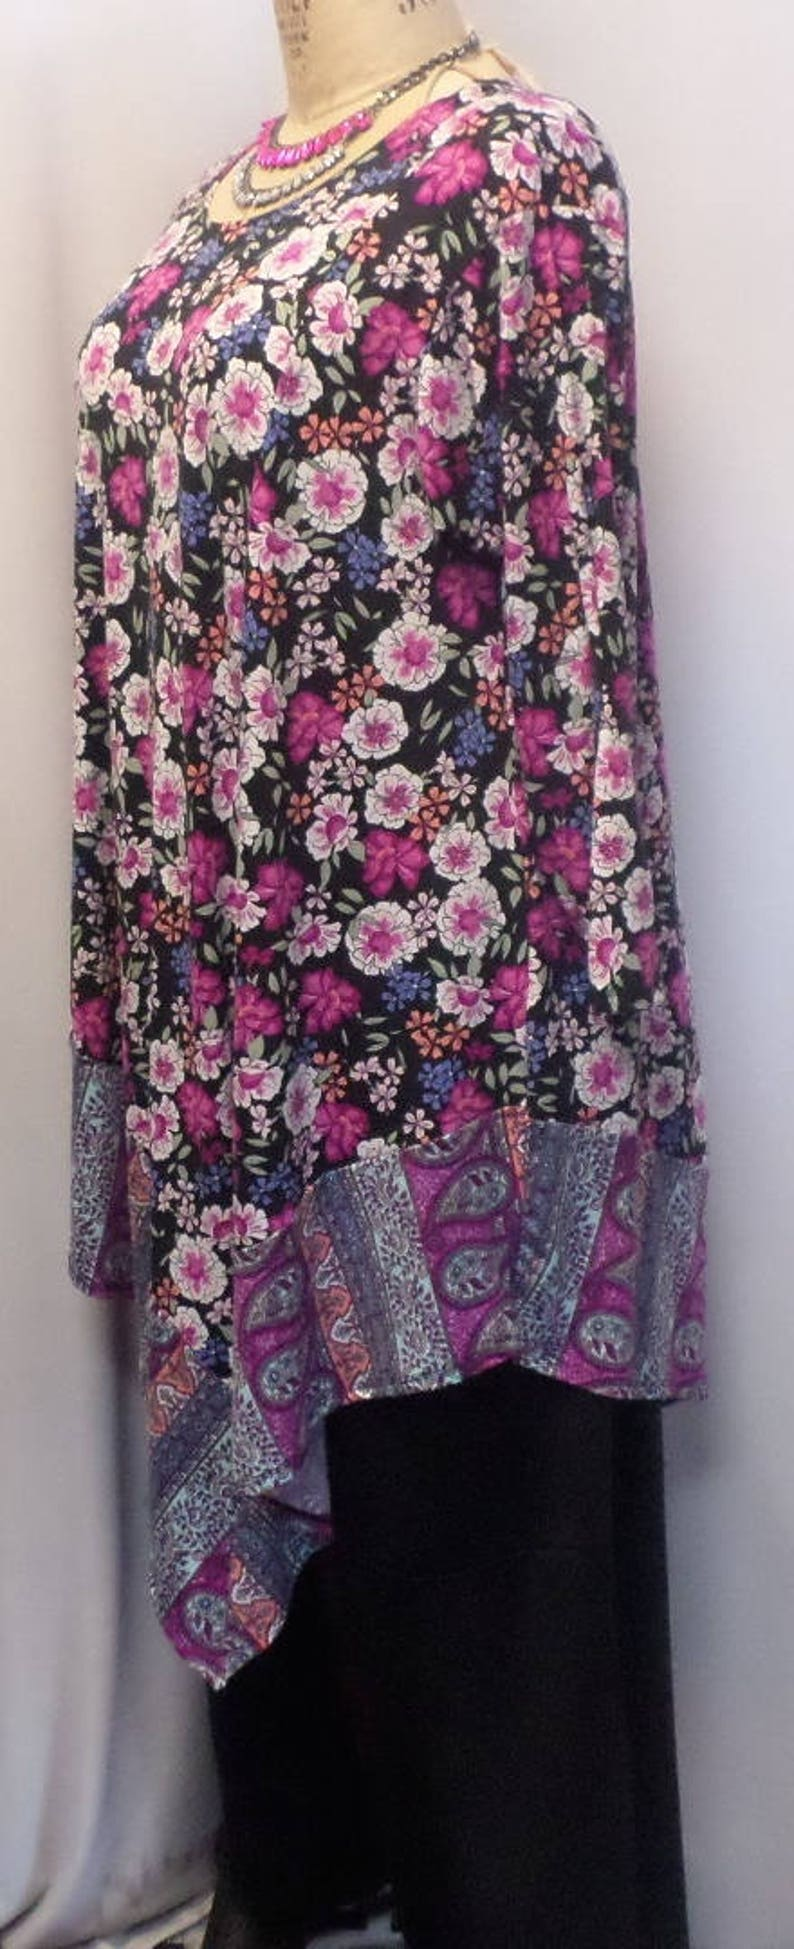 Coco and Juan fits 1X,2X Black Lagenlook Blue Women\u2019s Top Bust 50 inches Size 1 Plus Size Tunic Top Pink Floral Angel Tunic Top